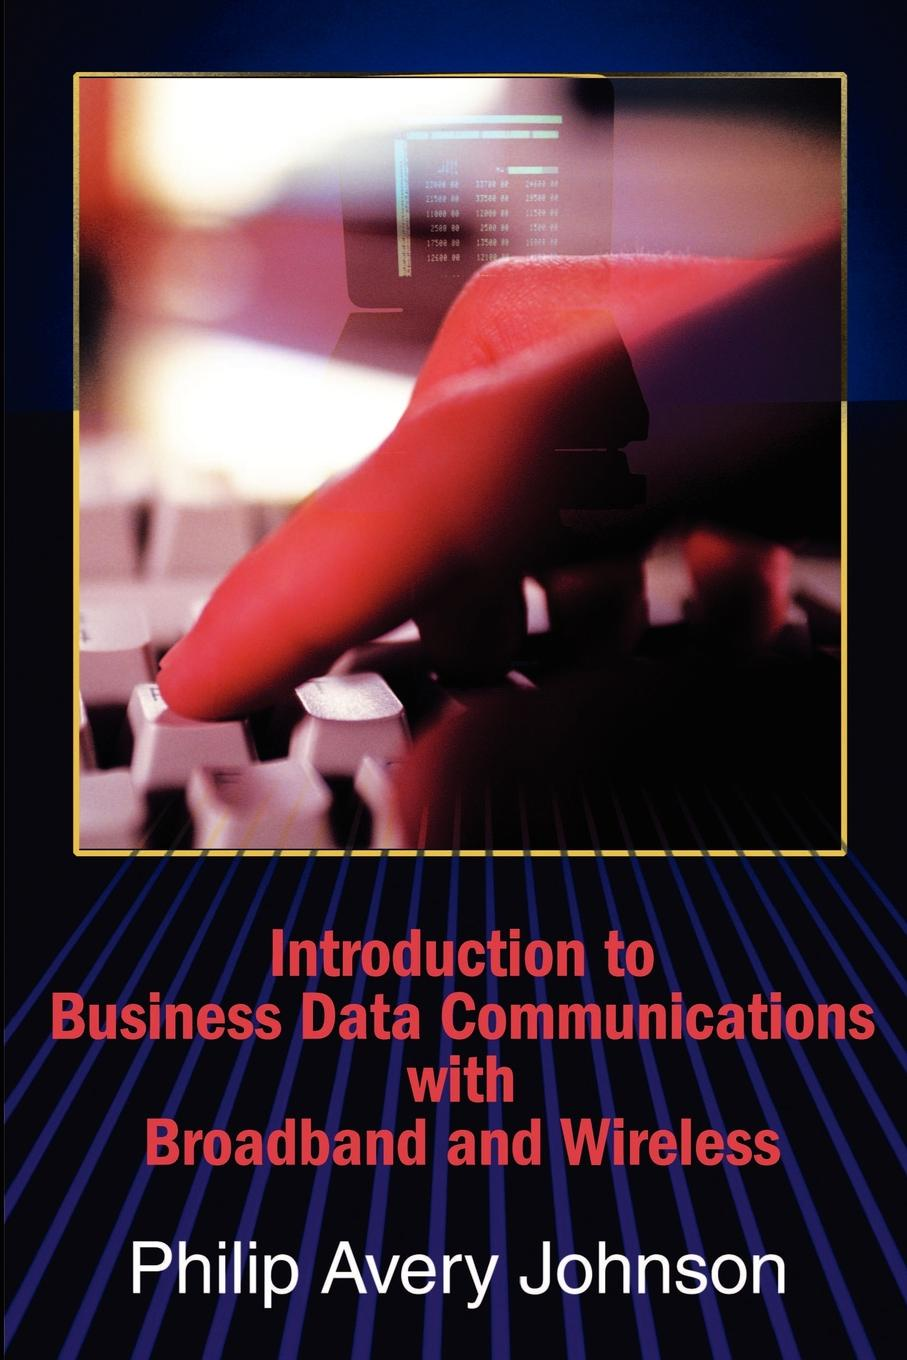 Philip A. Johnson Introduction to Business Data Communications with Broadband and Wireless